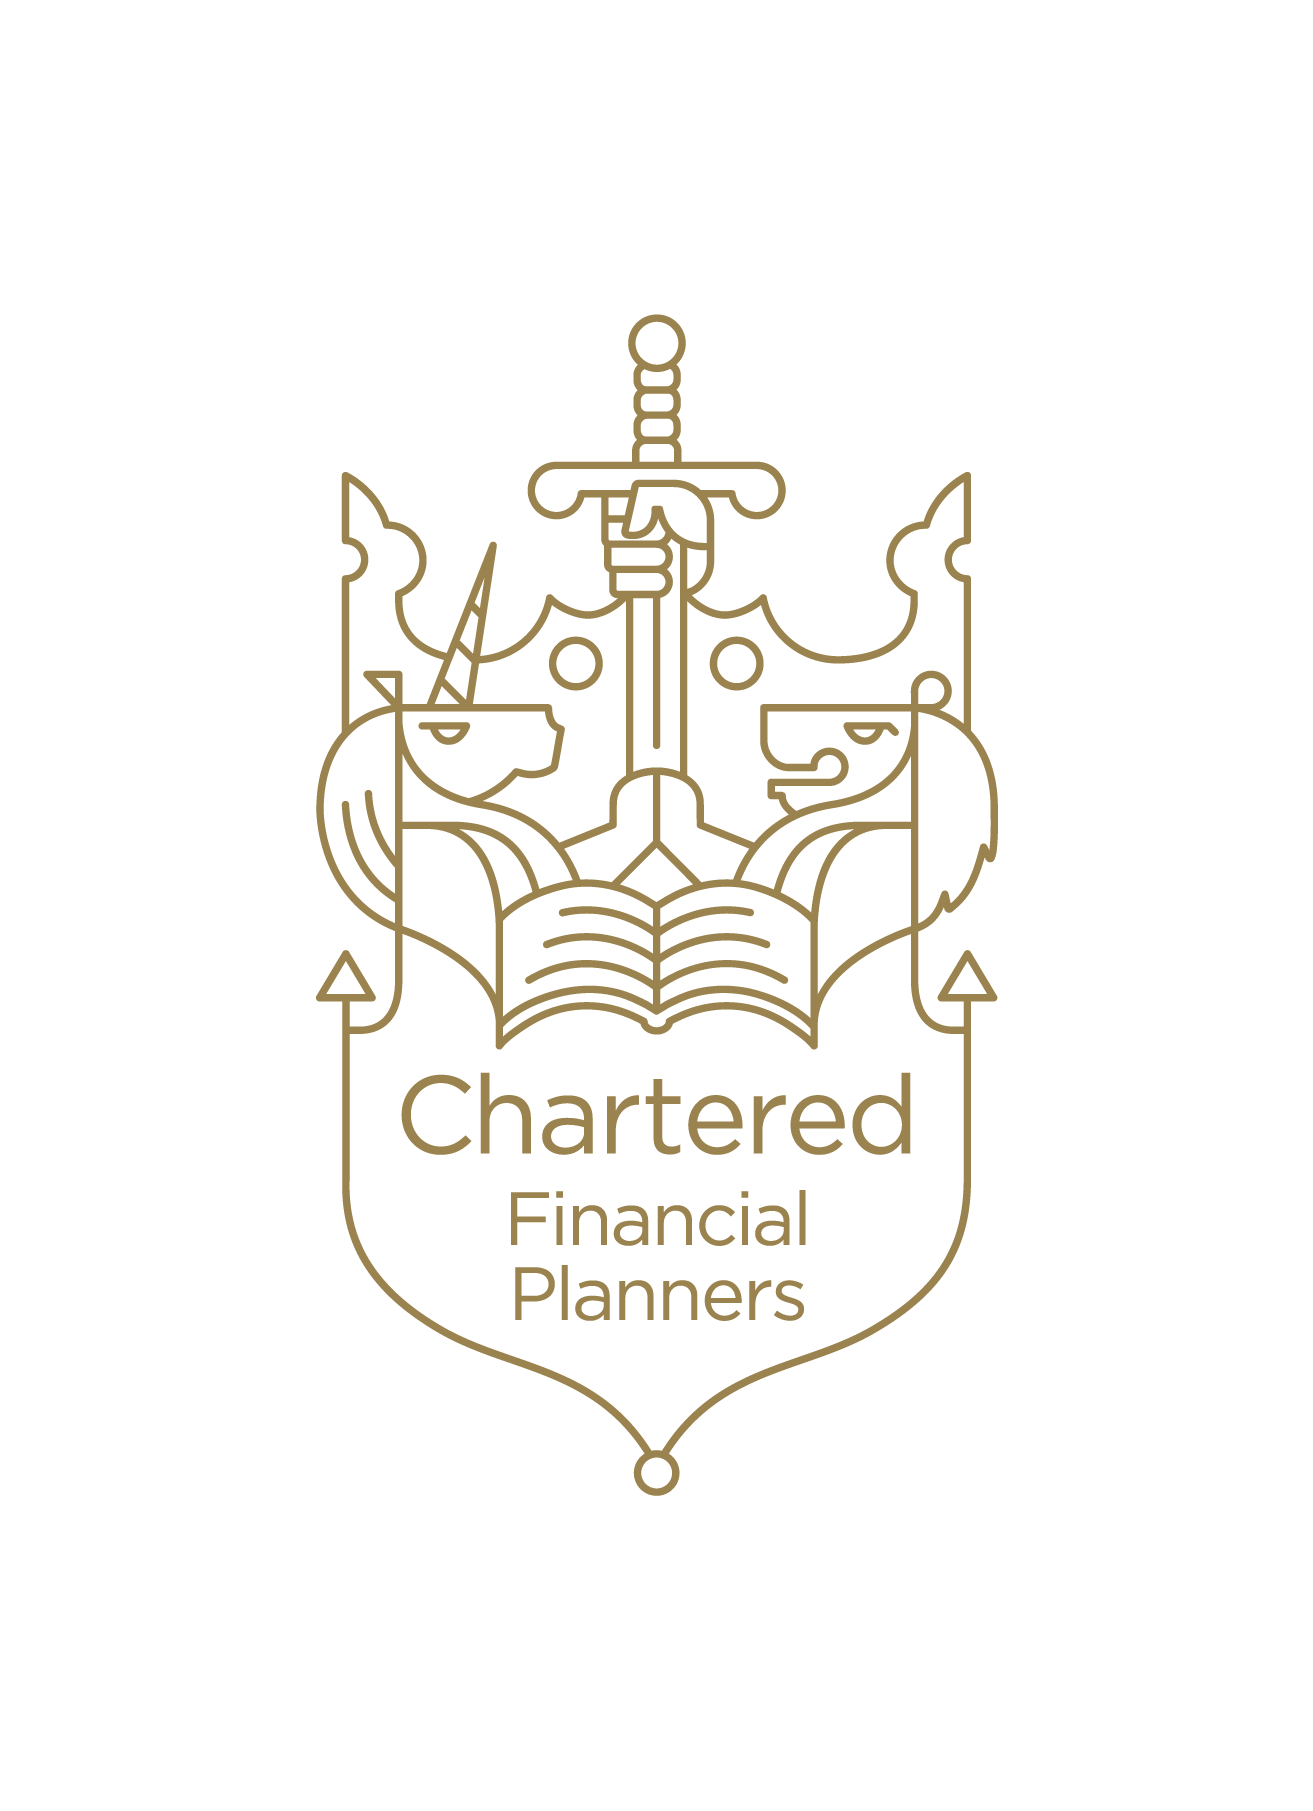 Chartered_Standard_Corp_FP_Gold_RGB-01.png